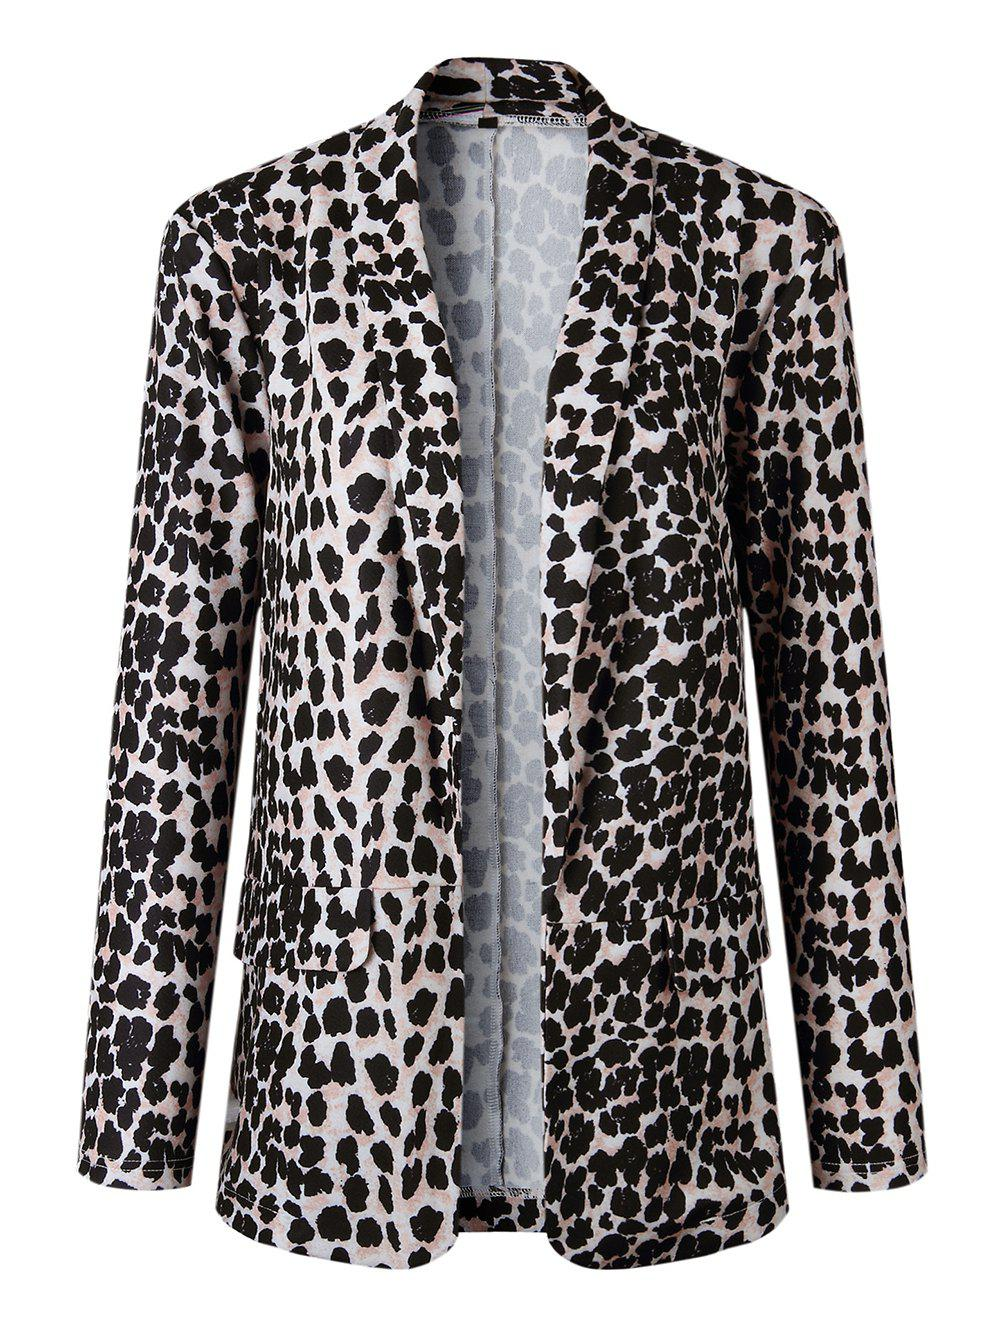 Latest Women Fashion Animal Print Leopard Cheetah Formal Suit Jacket